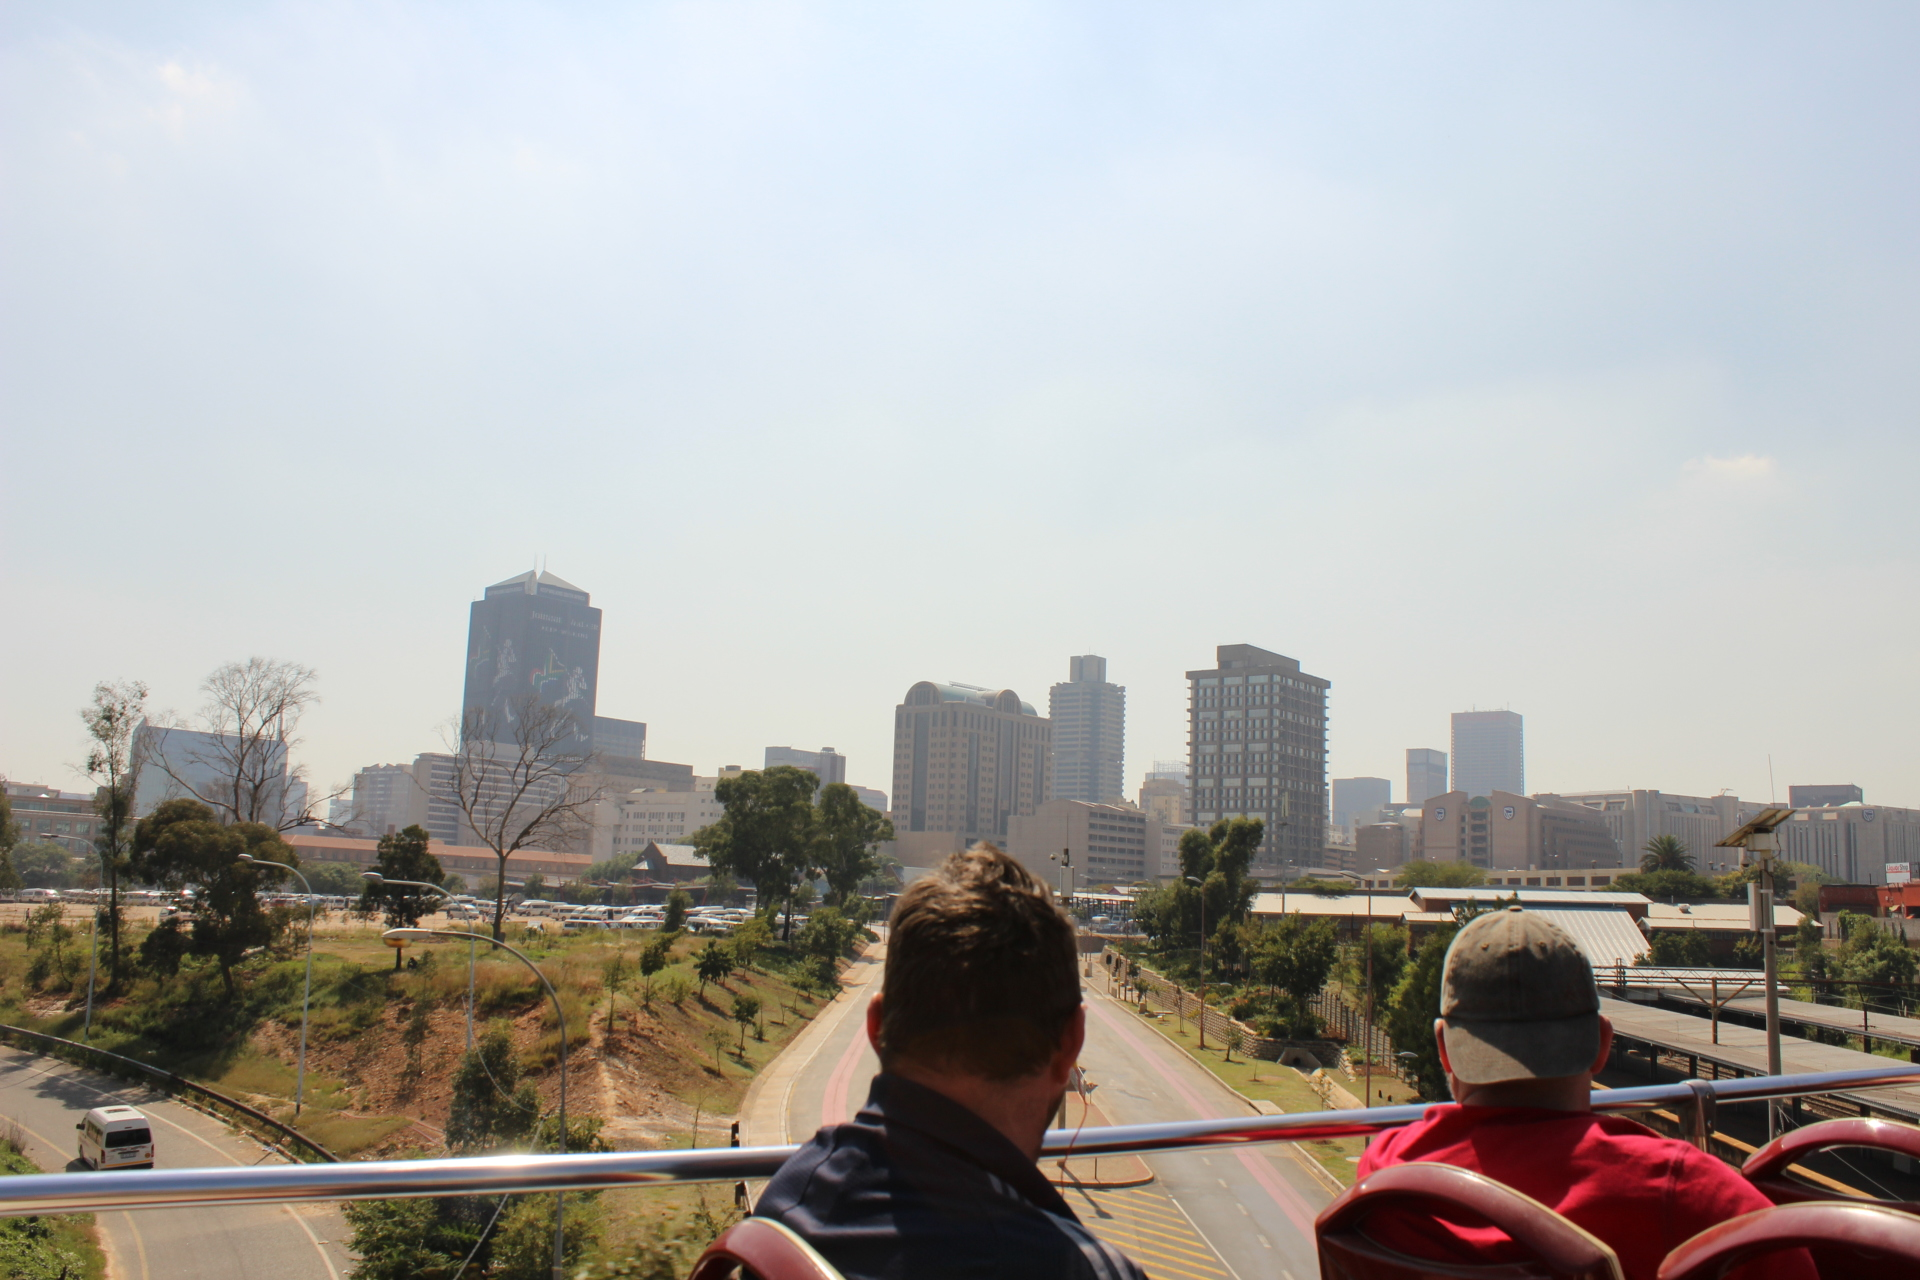 2018 South Africa Trip, Part 16: Sightseeing around Johannesburg